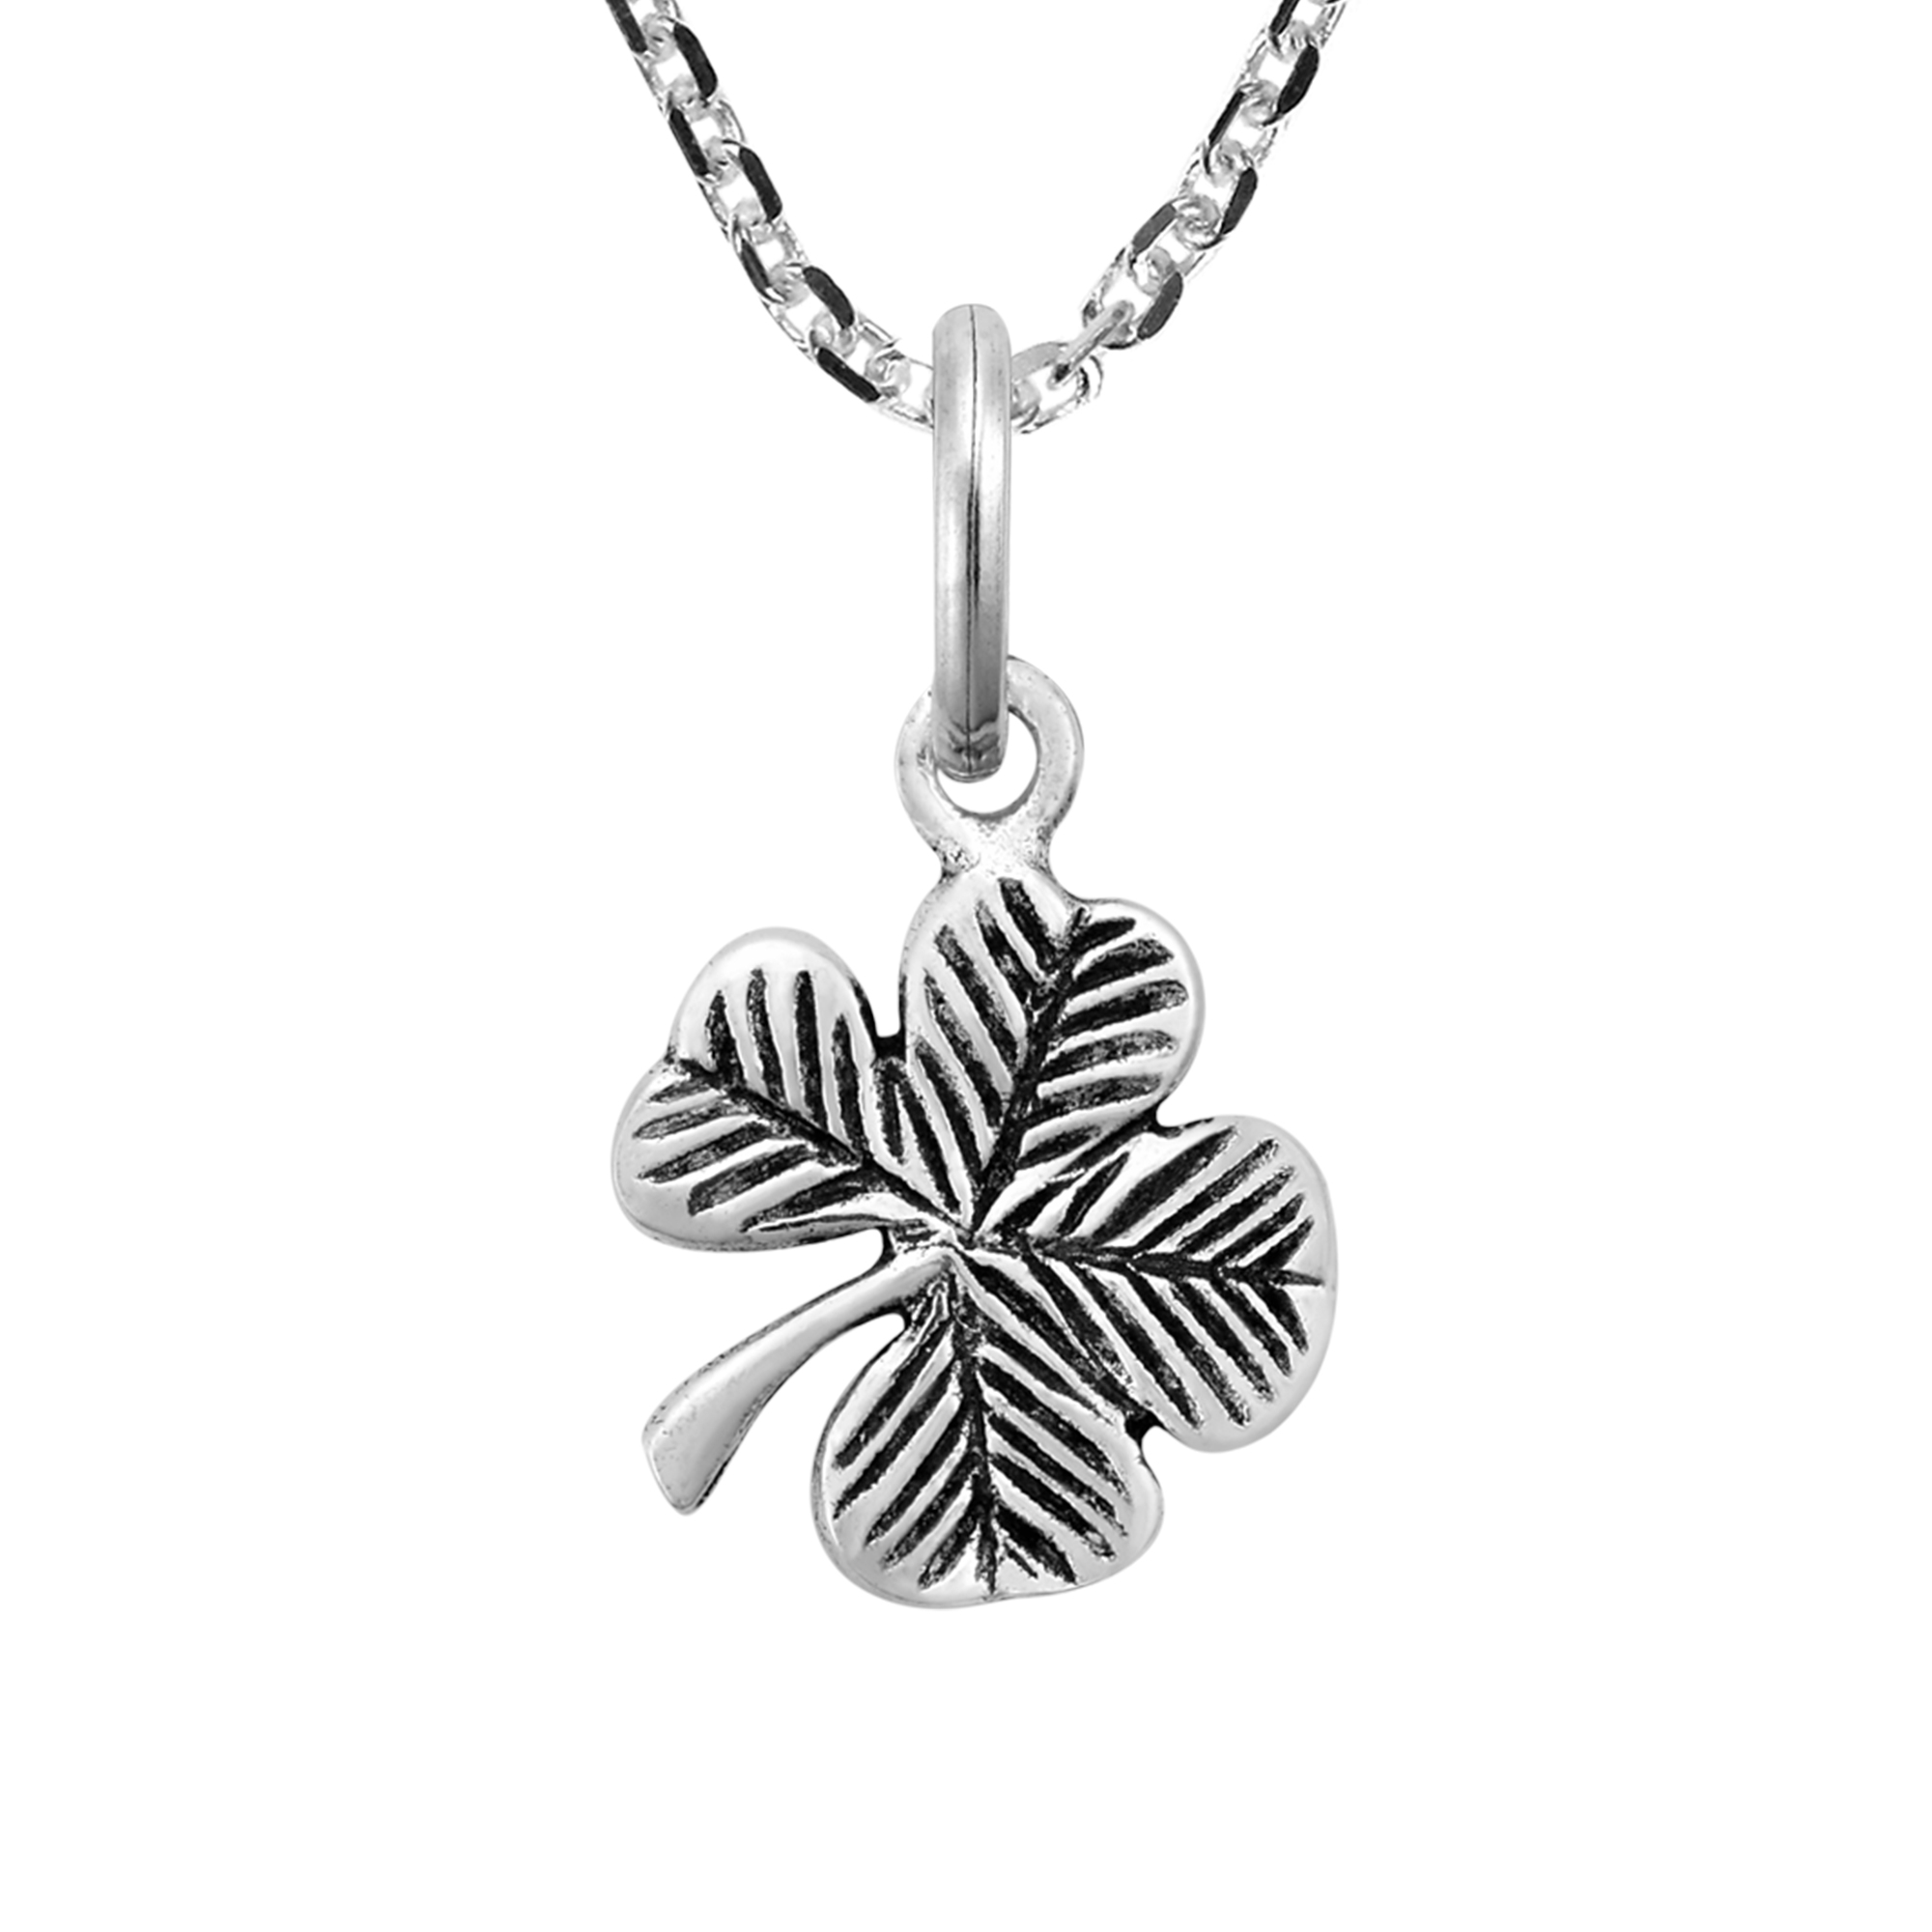 Details About Lucky Charm Sterling Silver Four Leaf Clover Pendant Necklace Intended For Most Popular Shining Leaf Pendant Necklaces (View 15 of 25)